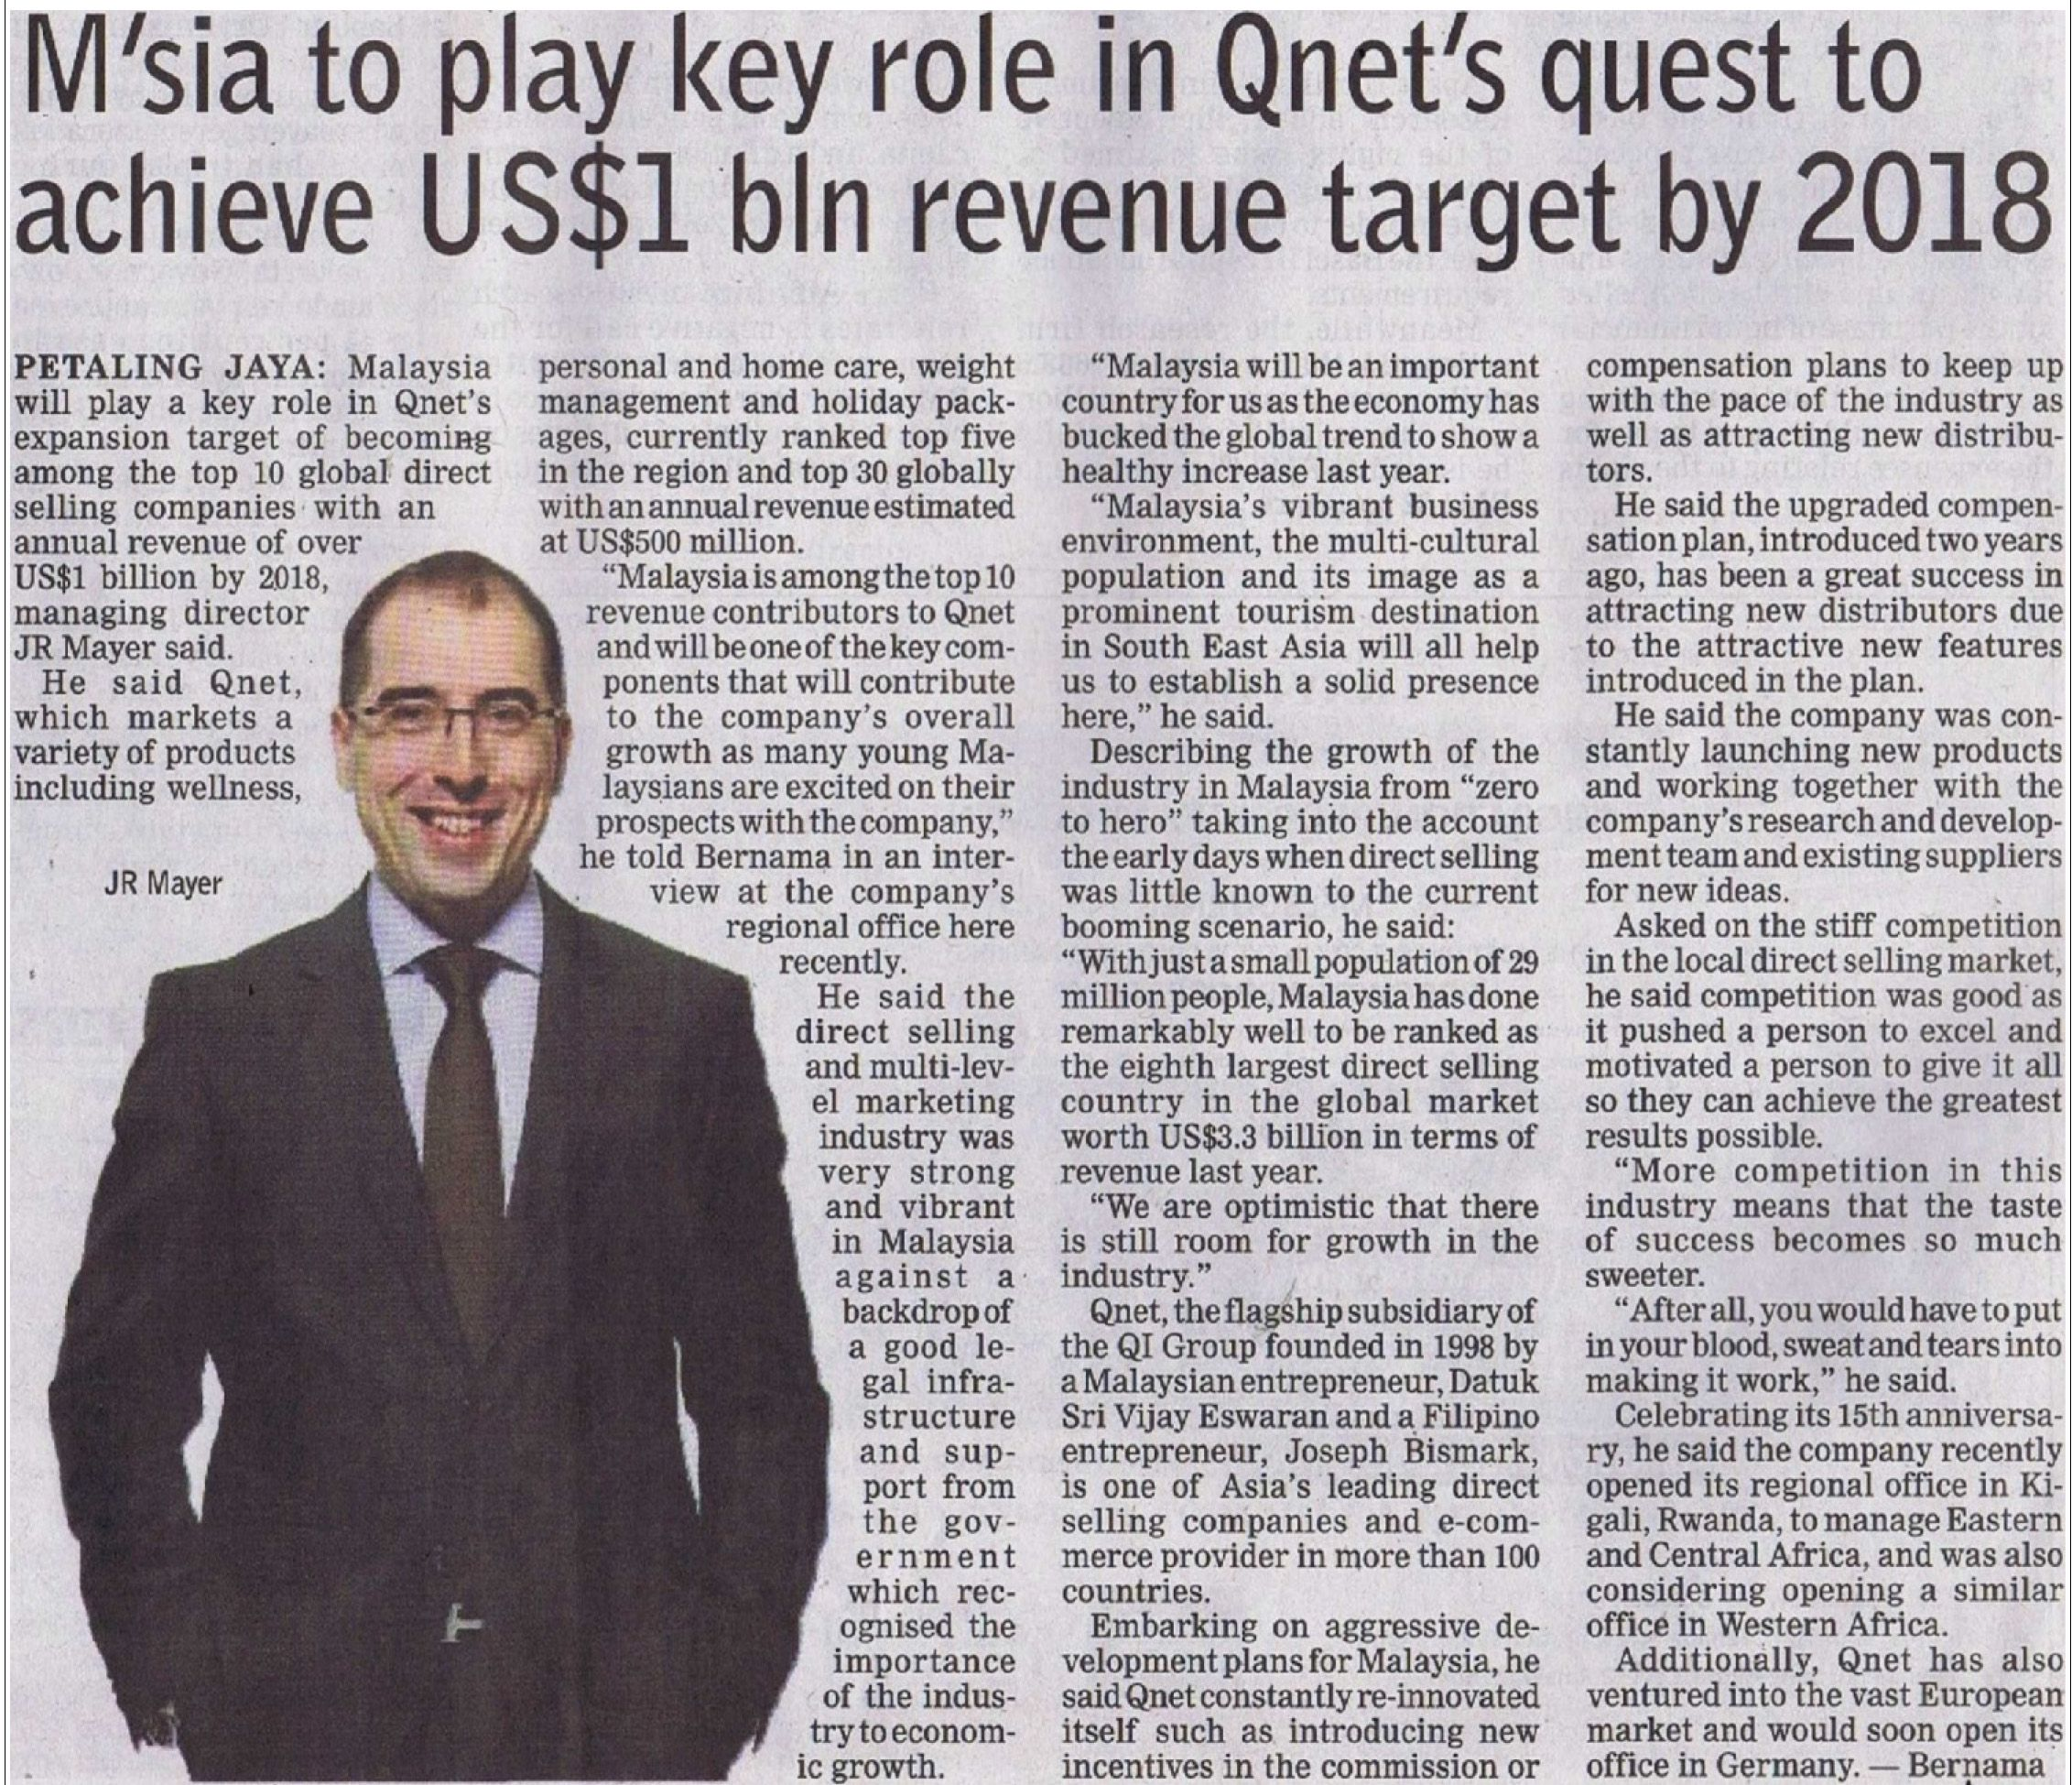 IN THE NEWS: #Malaysia to play key role in #QNET's quest to achieve